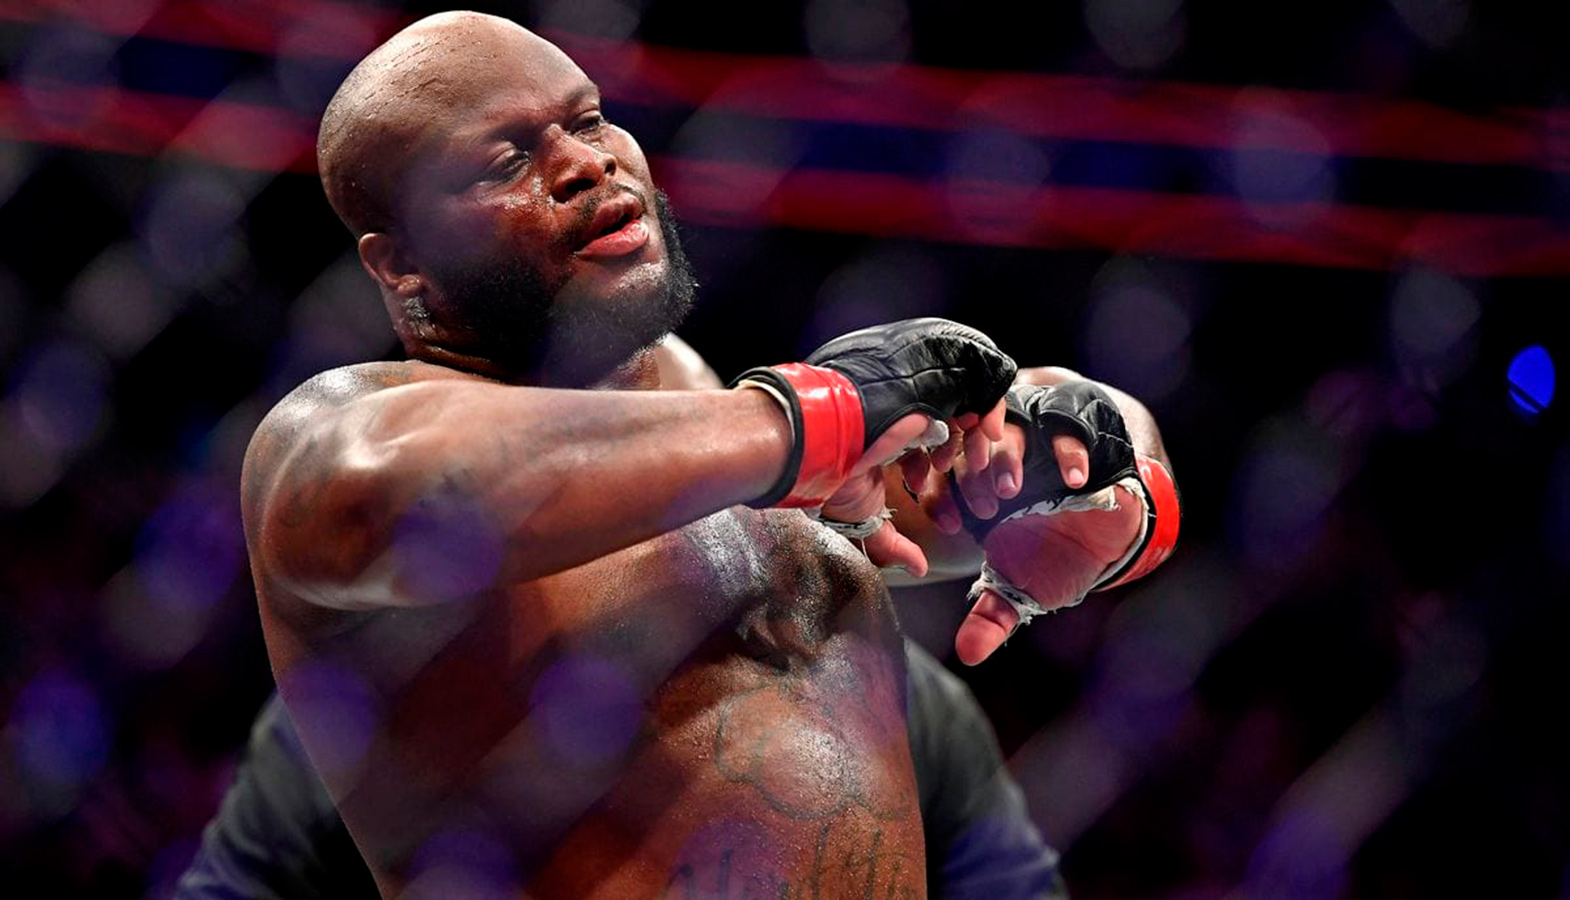 Alexey Oleynik Lost To Derrick Lewis By Knockout At The UFC Fight Night 174 In LA